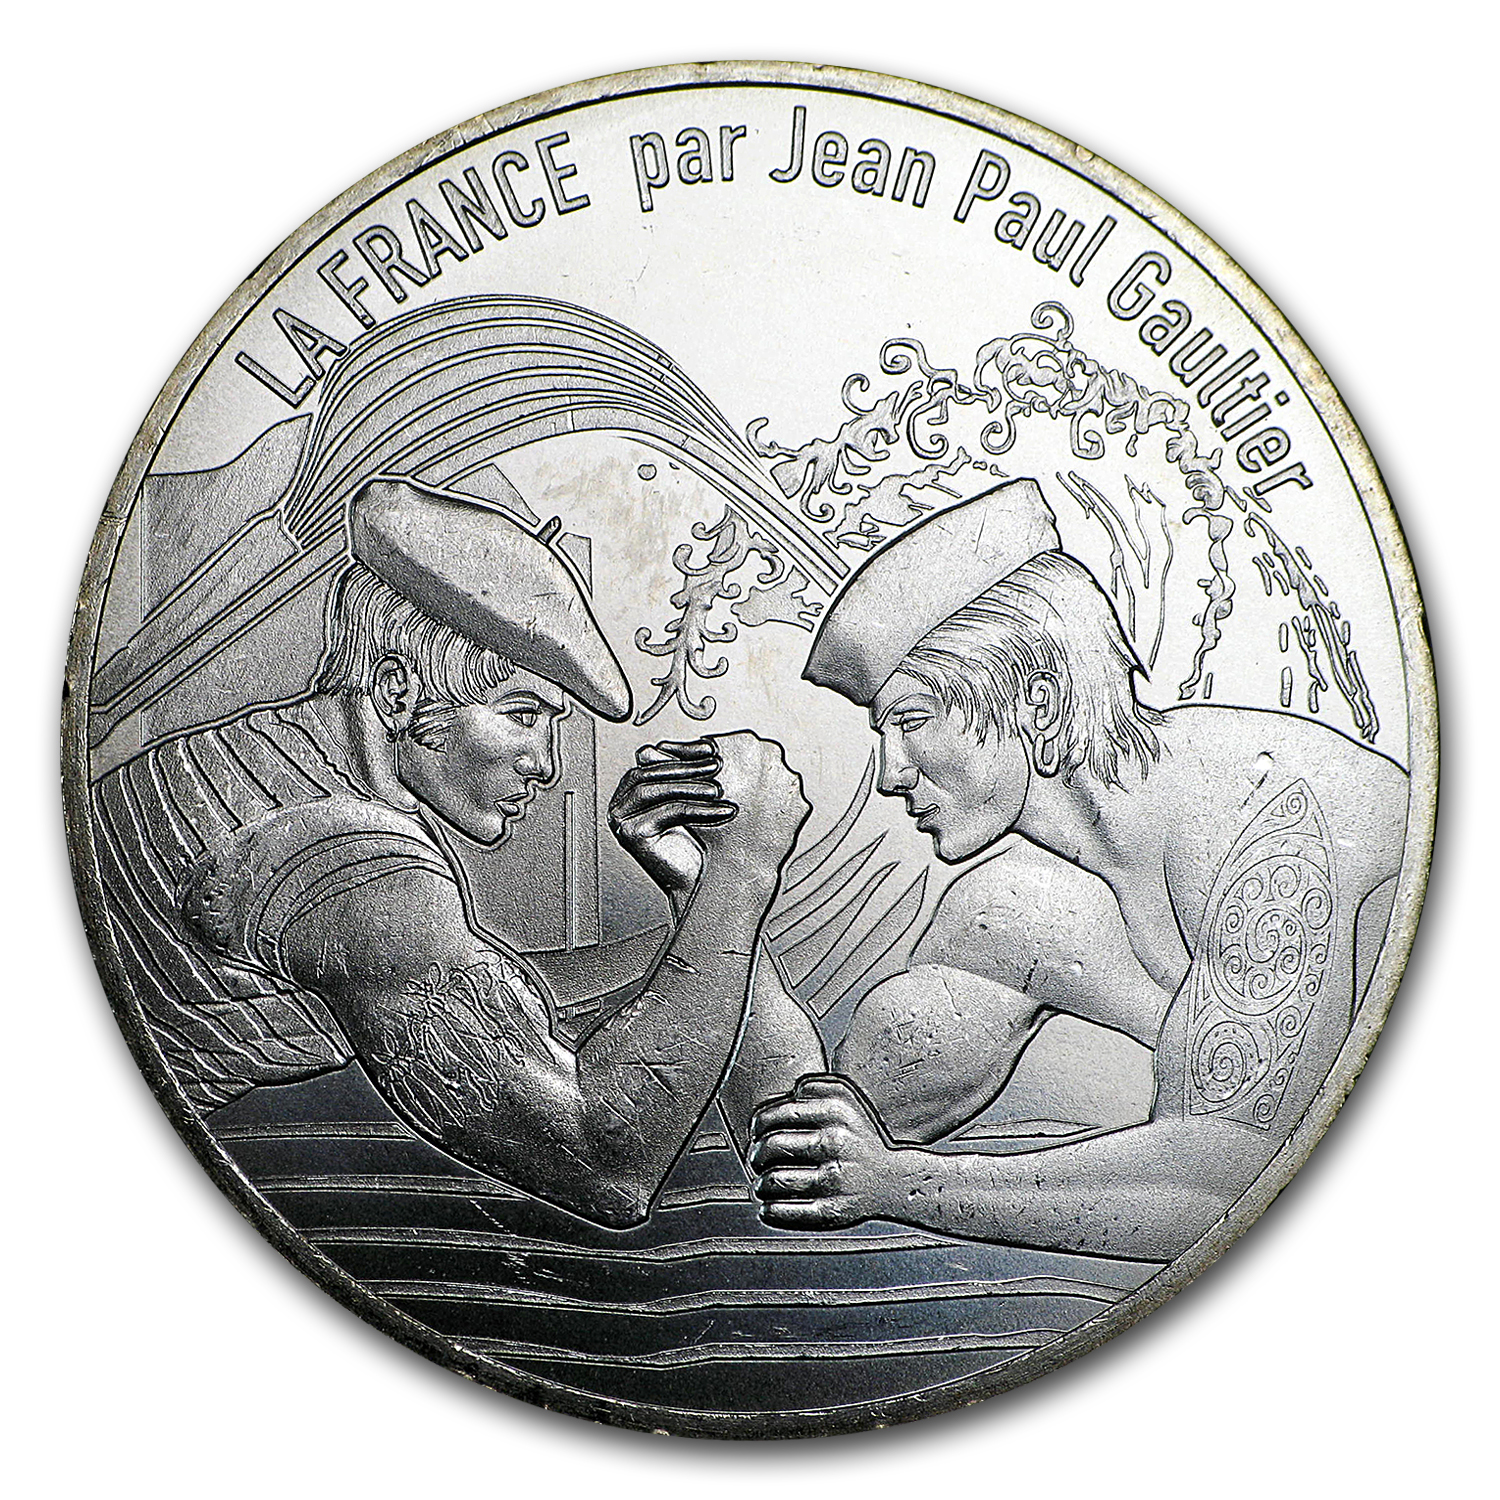 2017 Proof Silver €10 Jean Paul Gaultier (Pays Basque)